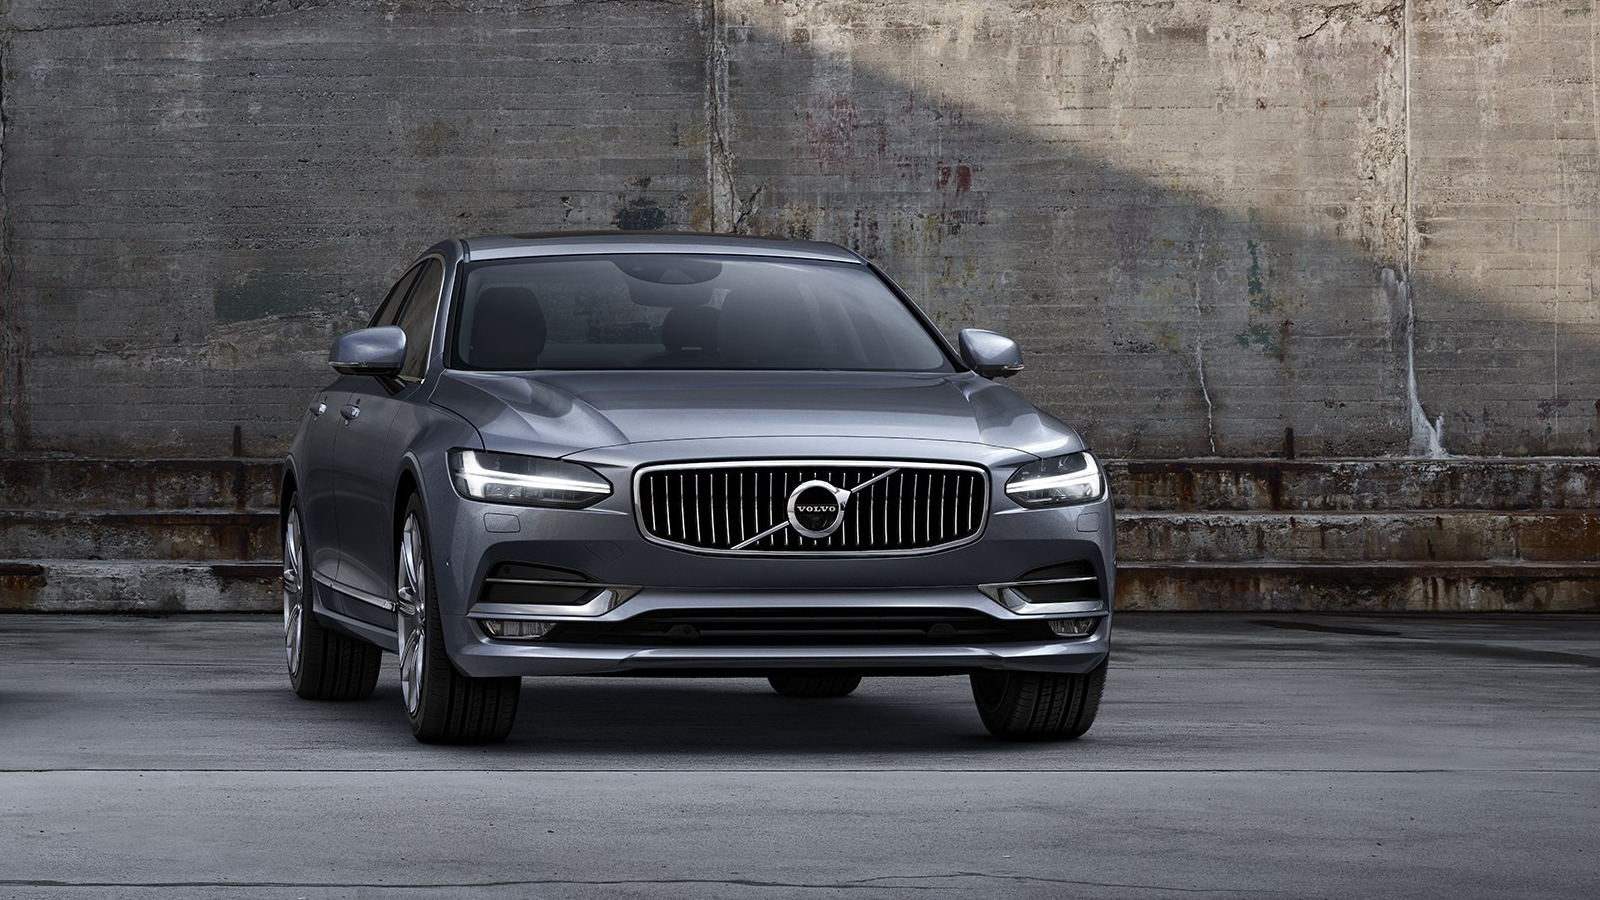 The volvo s90 was launched in 2016 as a replacement for the aging s80 and revived a nameplate the swedish brand last used in 1998